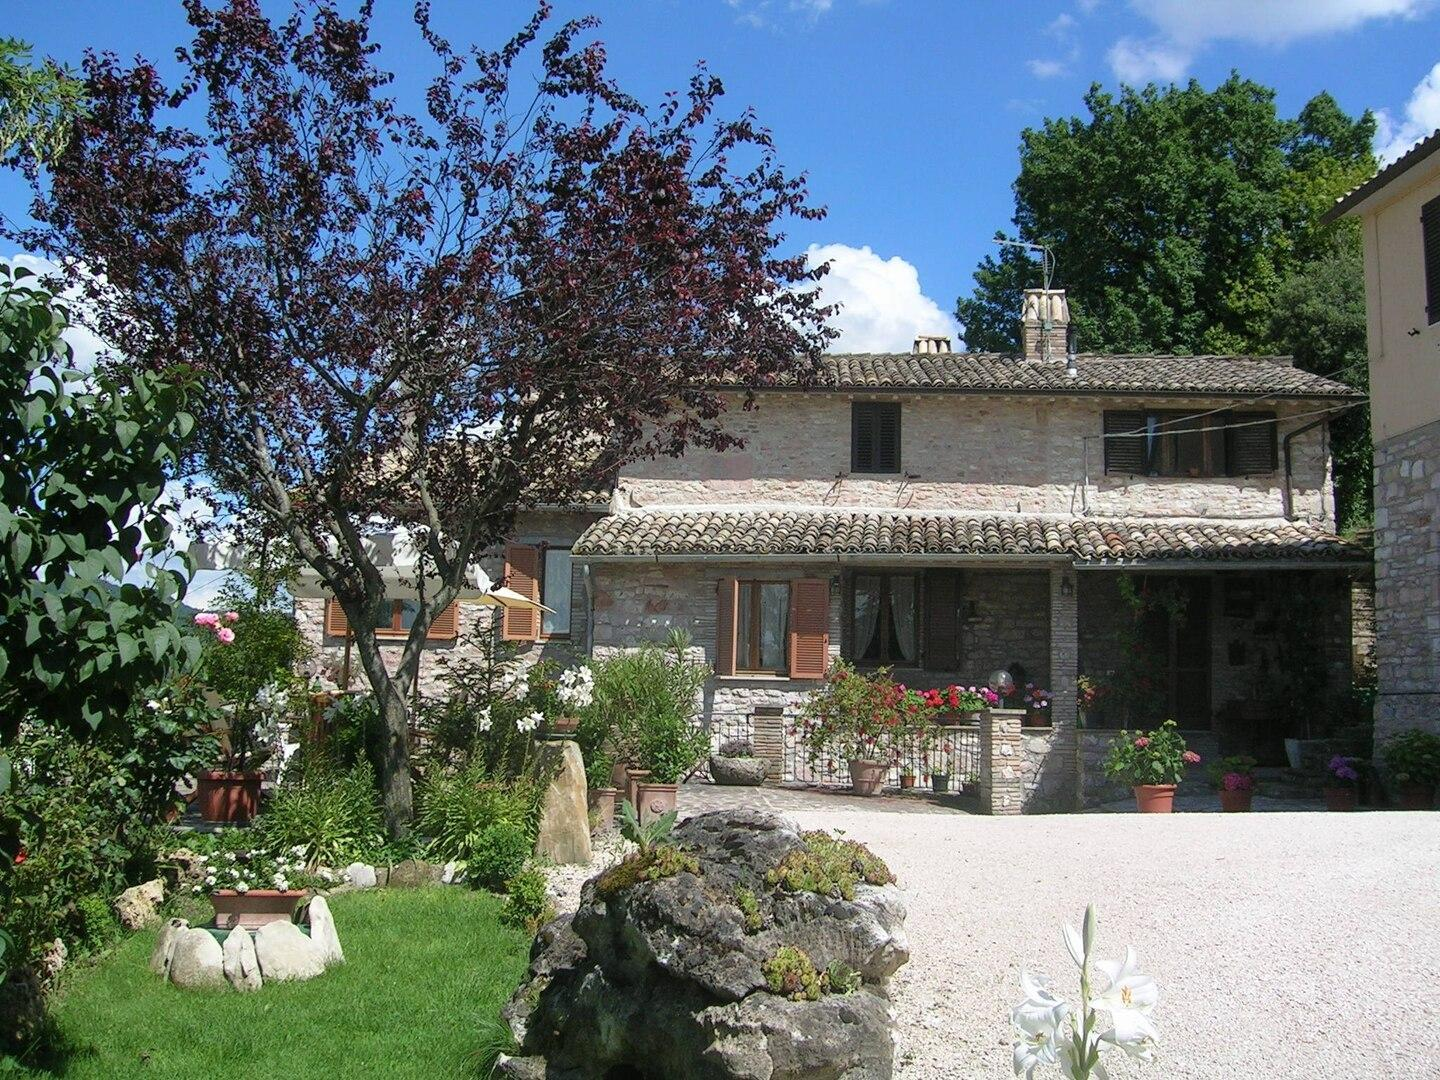 HOLIDAY HOUSE & APARTMENTS IN ASSISI